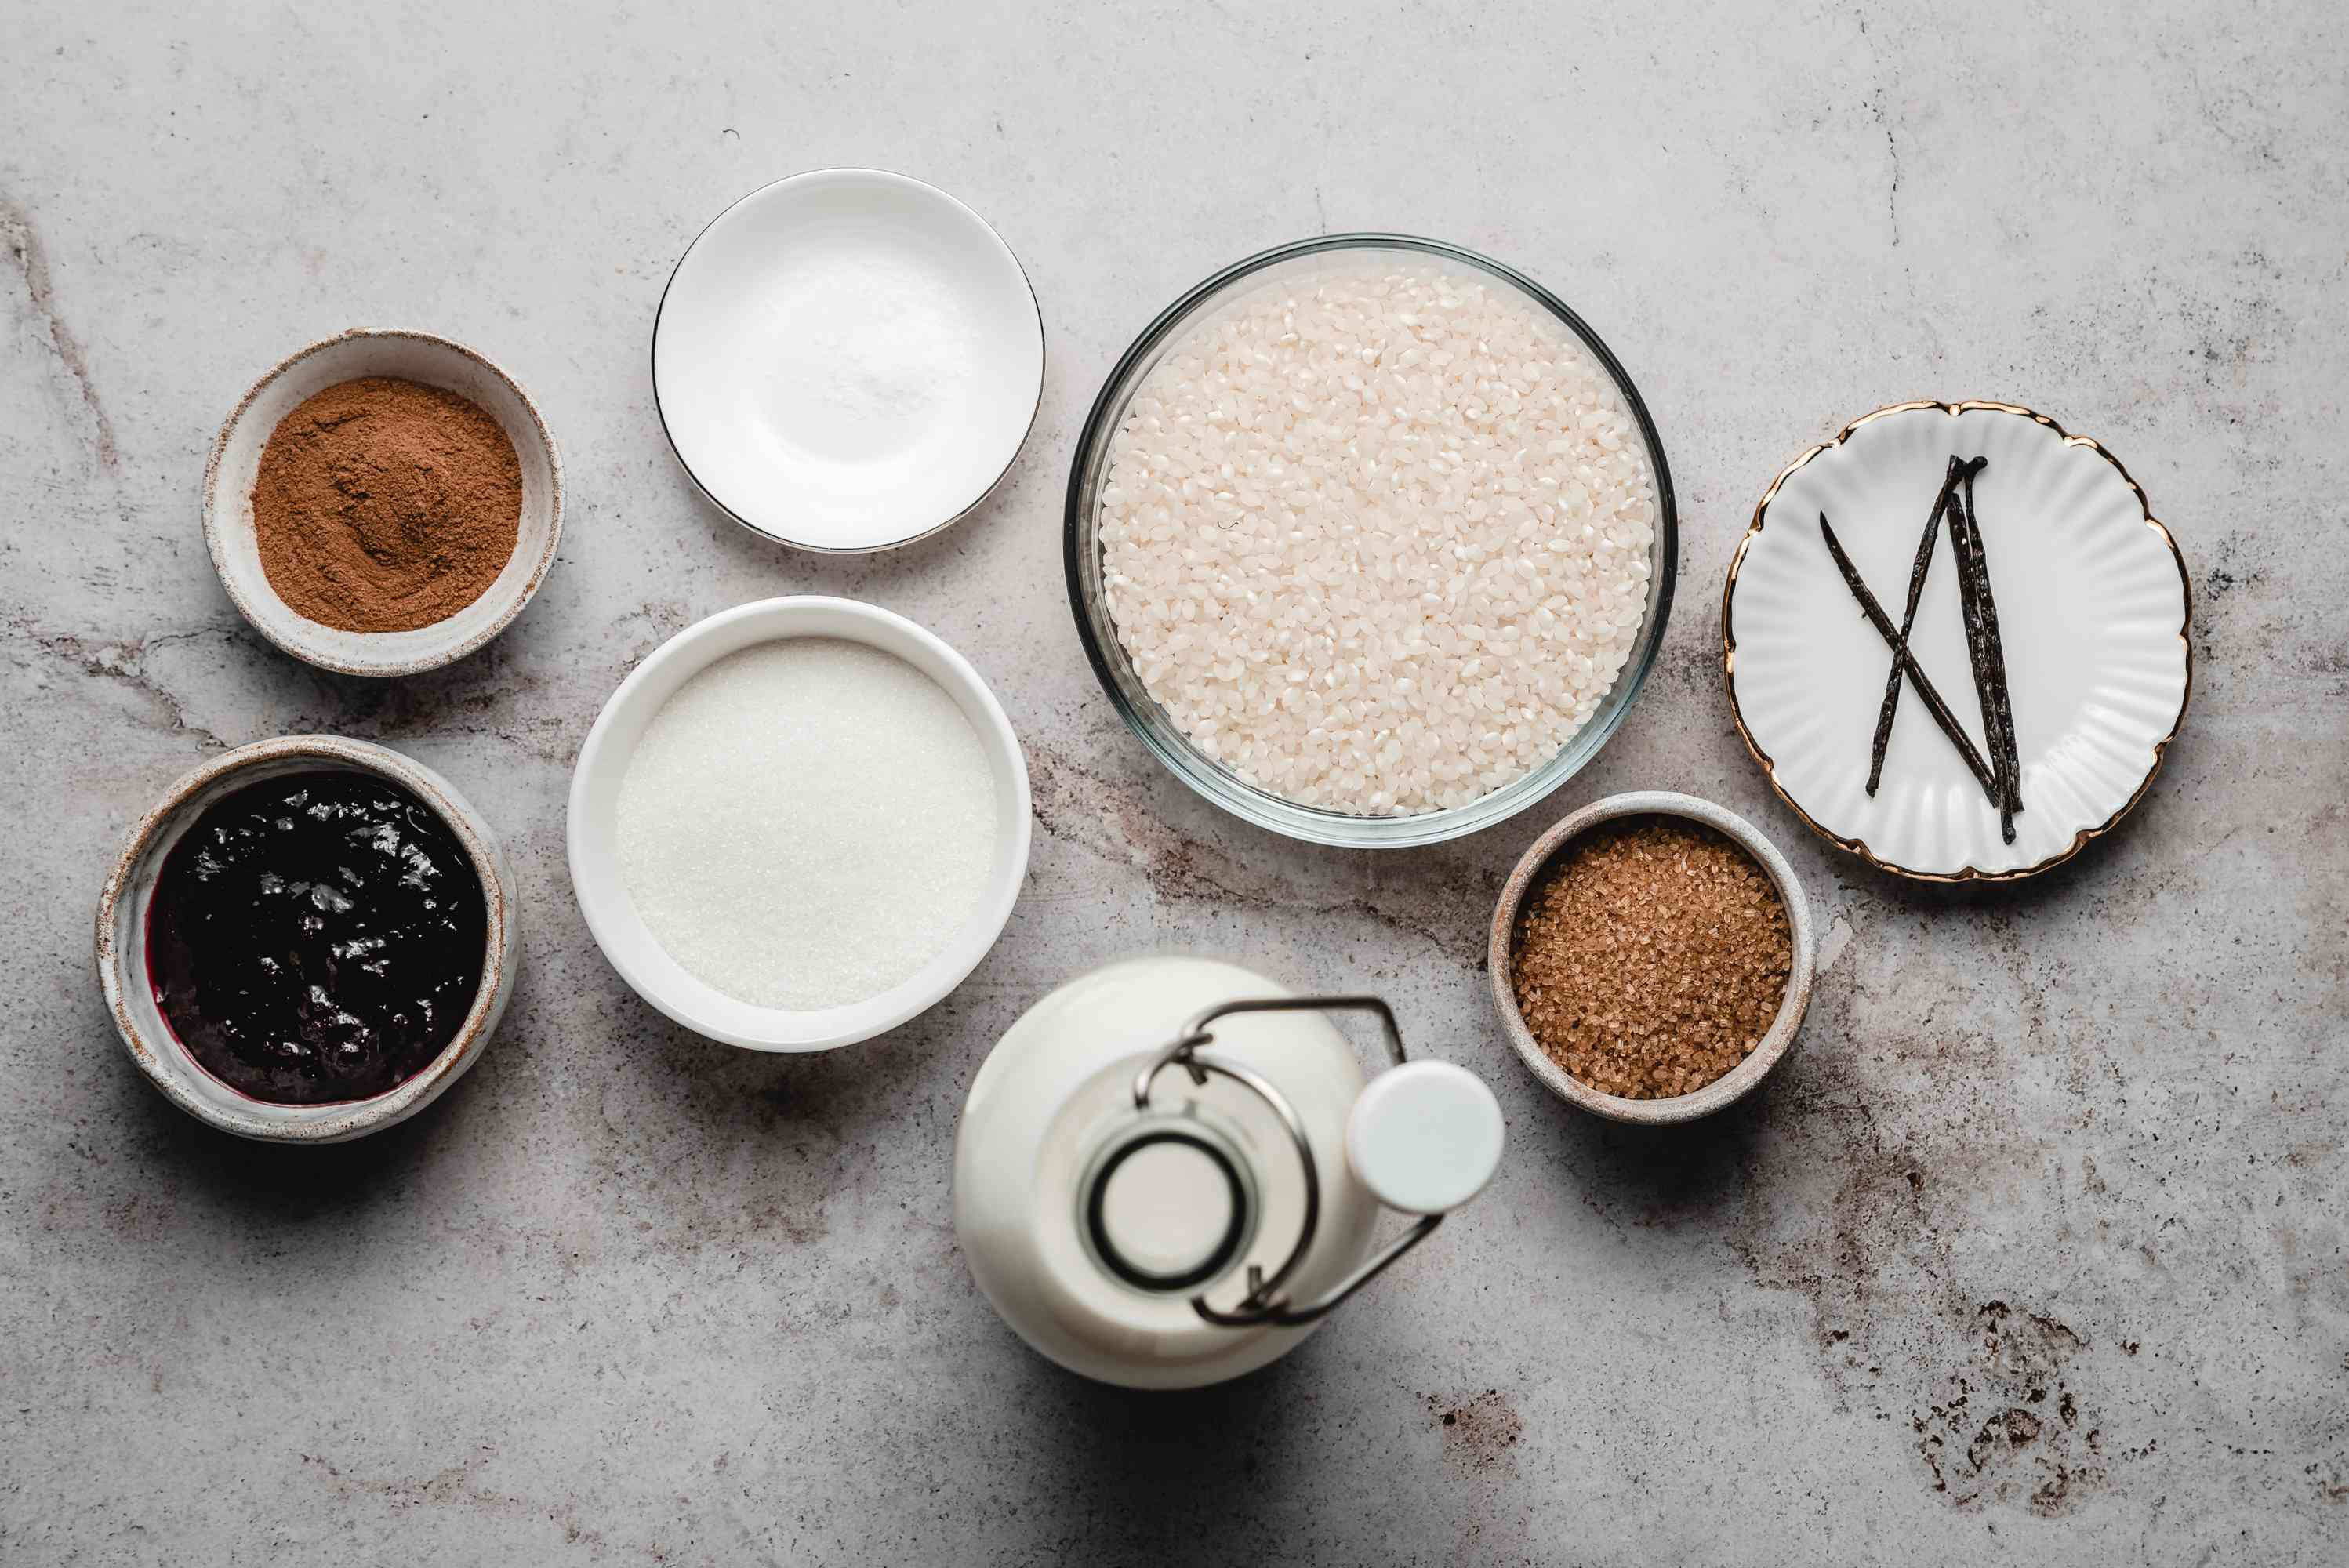 Ingredients gathered for rice pudding